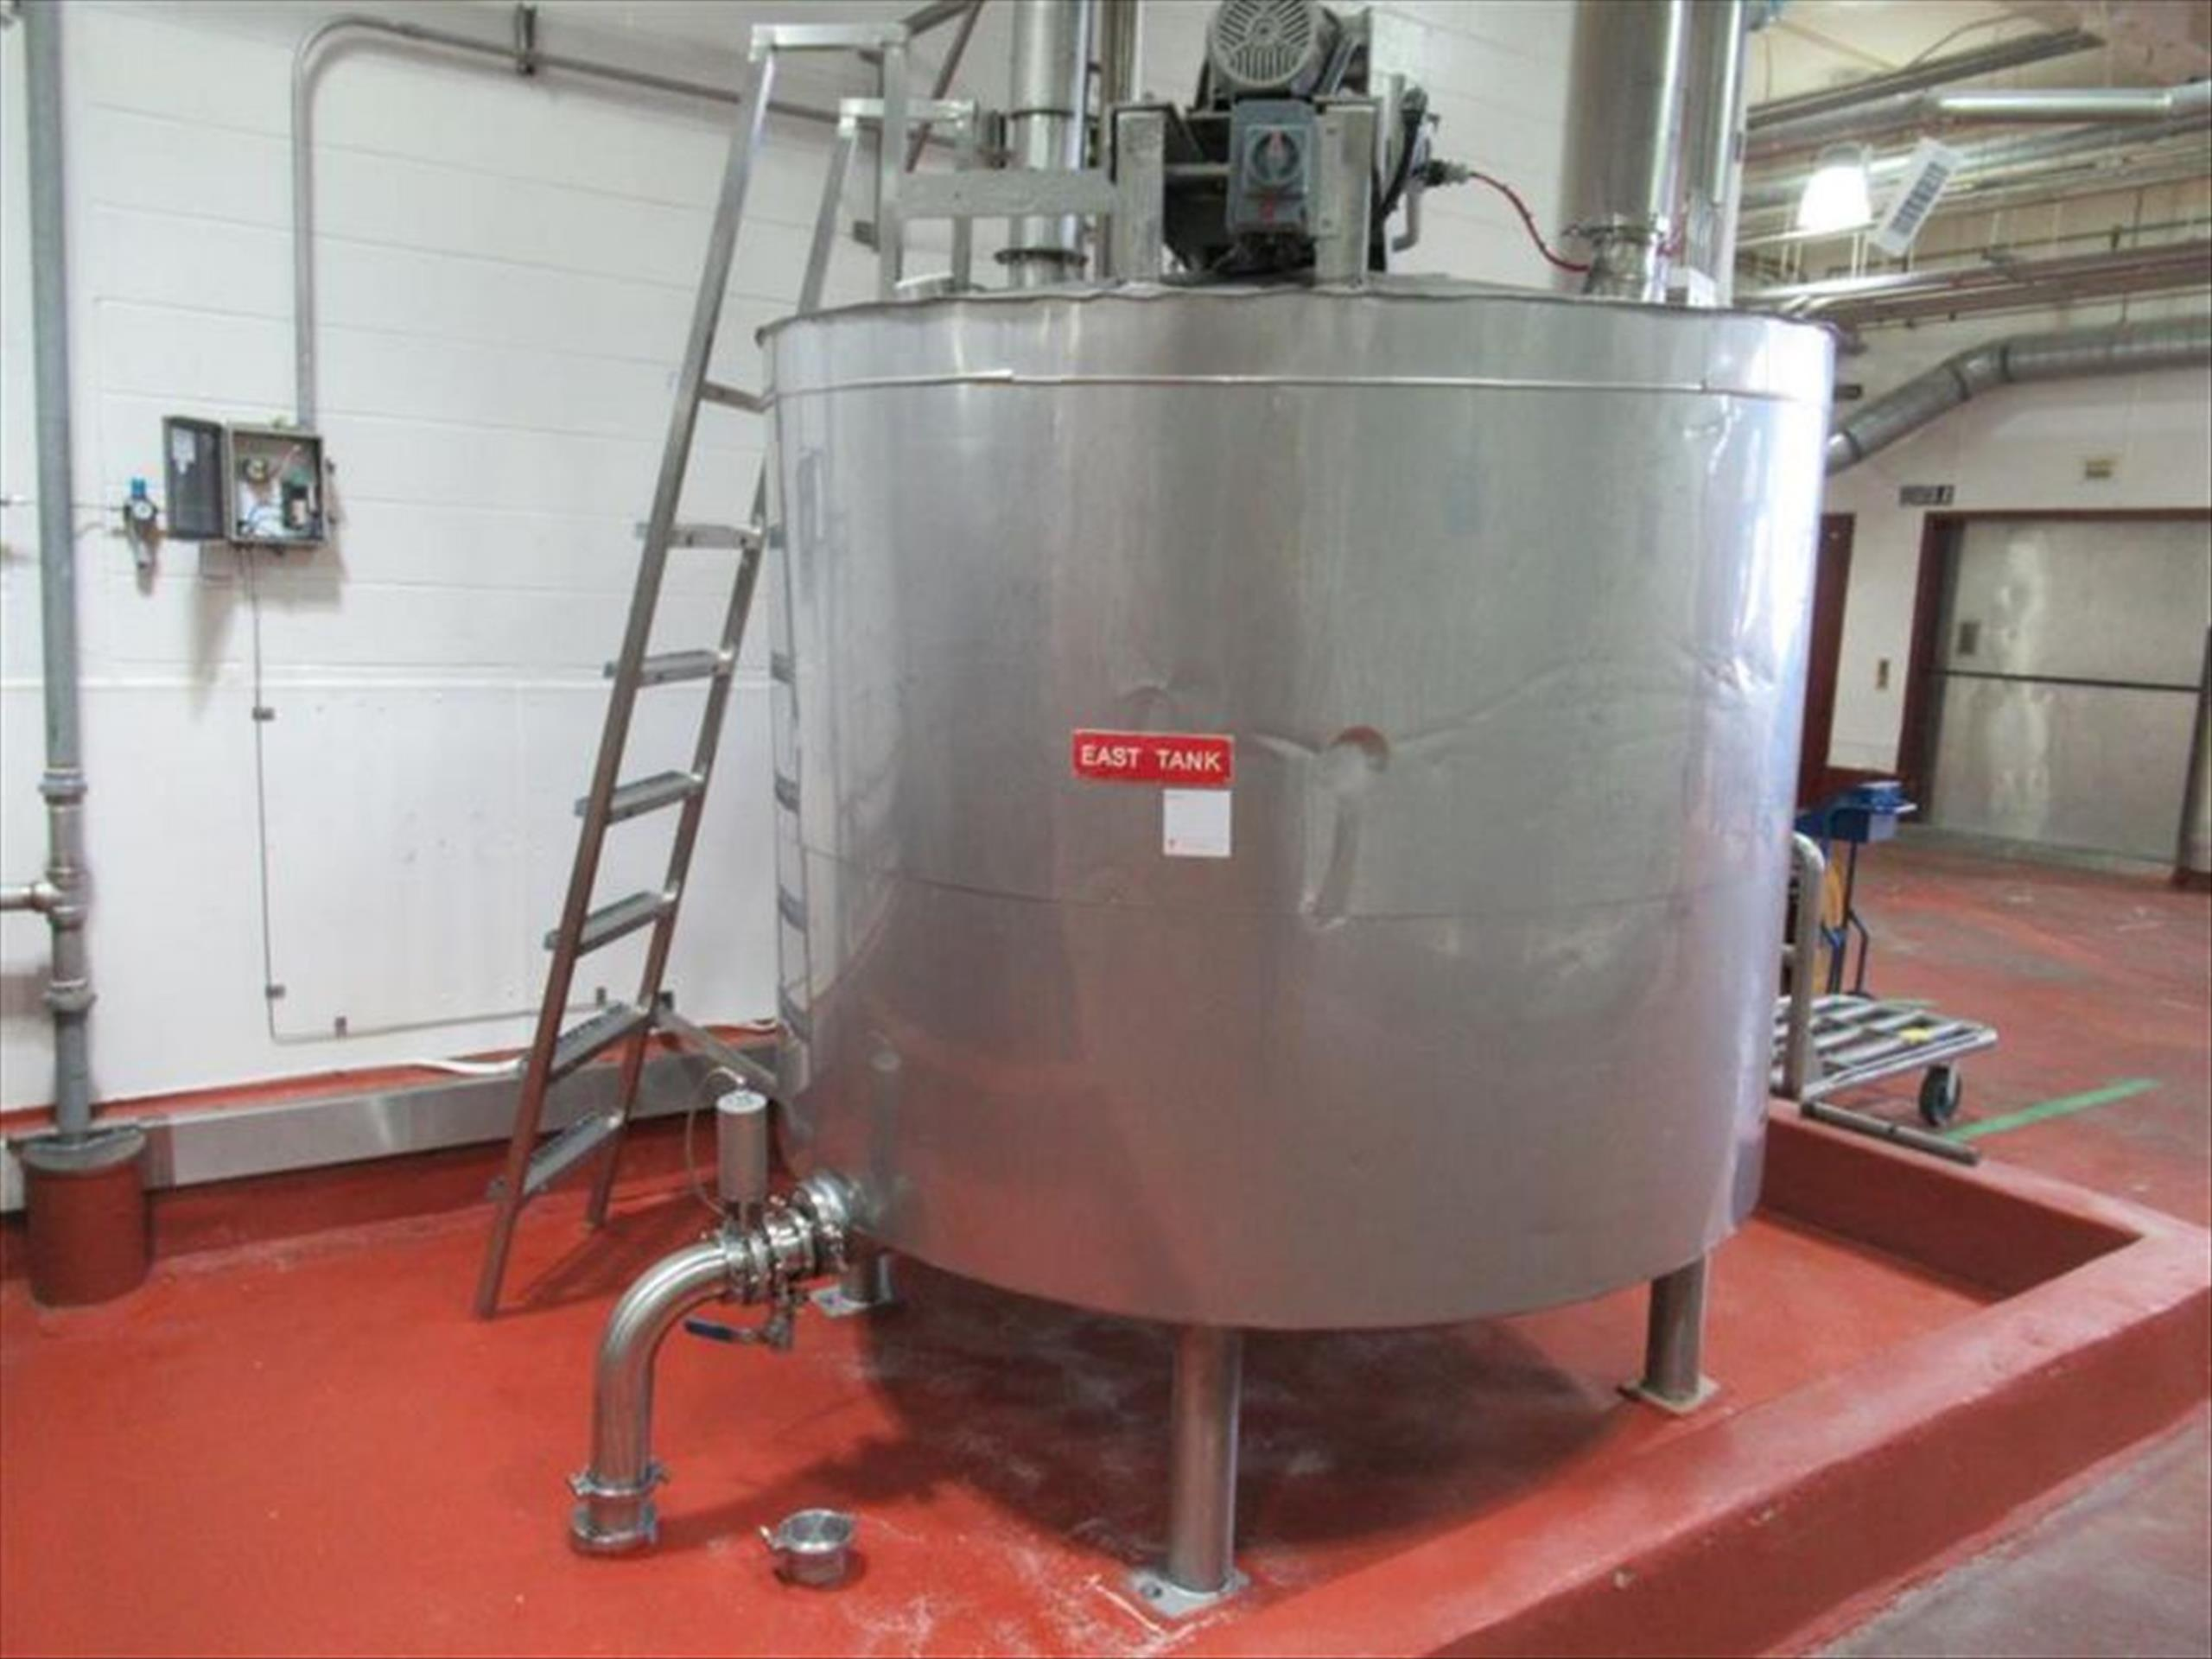 East holding stainless tank approx 60 in dia x 75 in h, cone top and bottom, 20 in dia and 16 in mh,